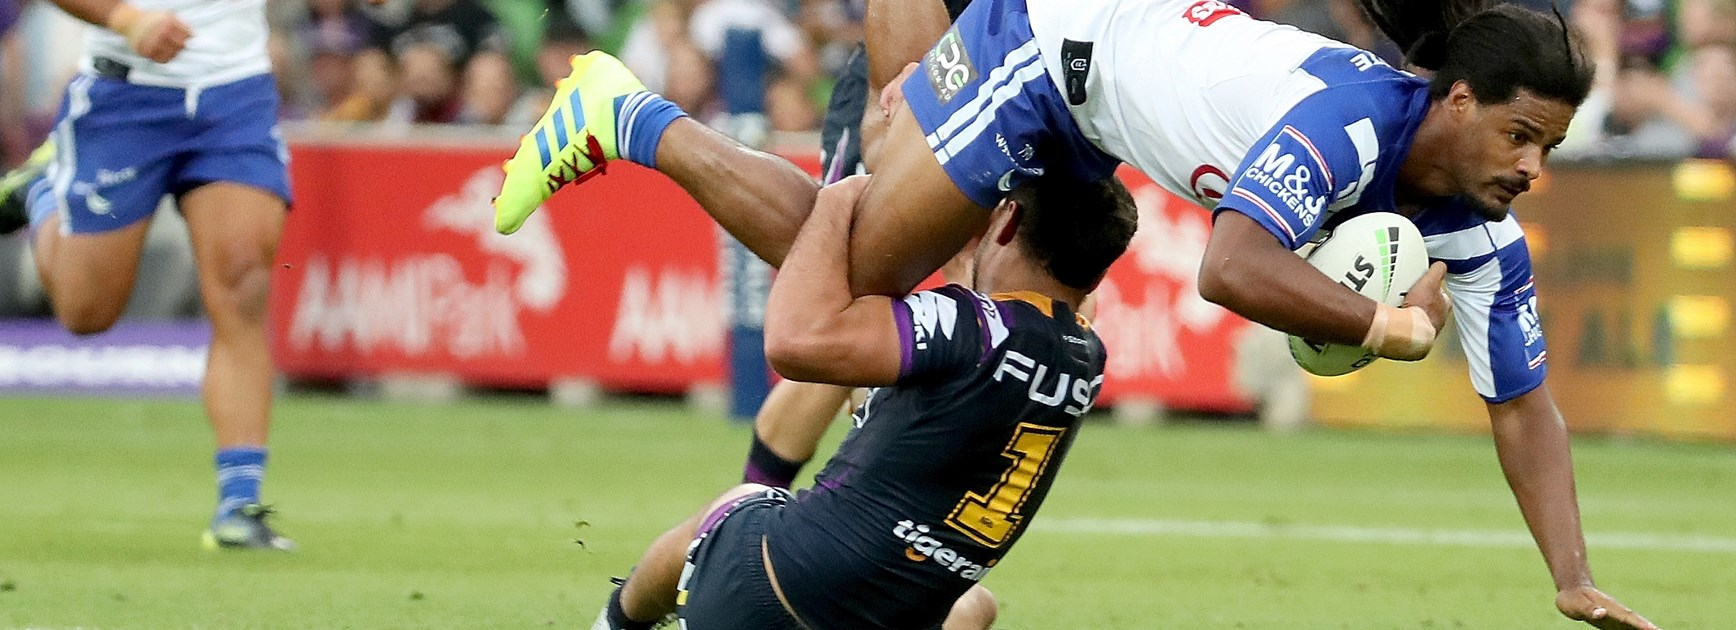 Hughes recalls how he tackled Bulldogs winger Okunbor